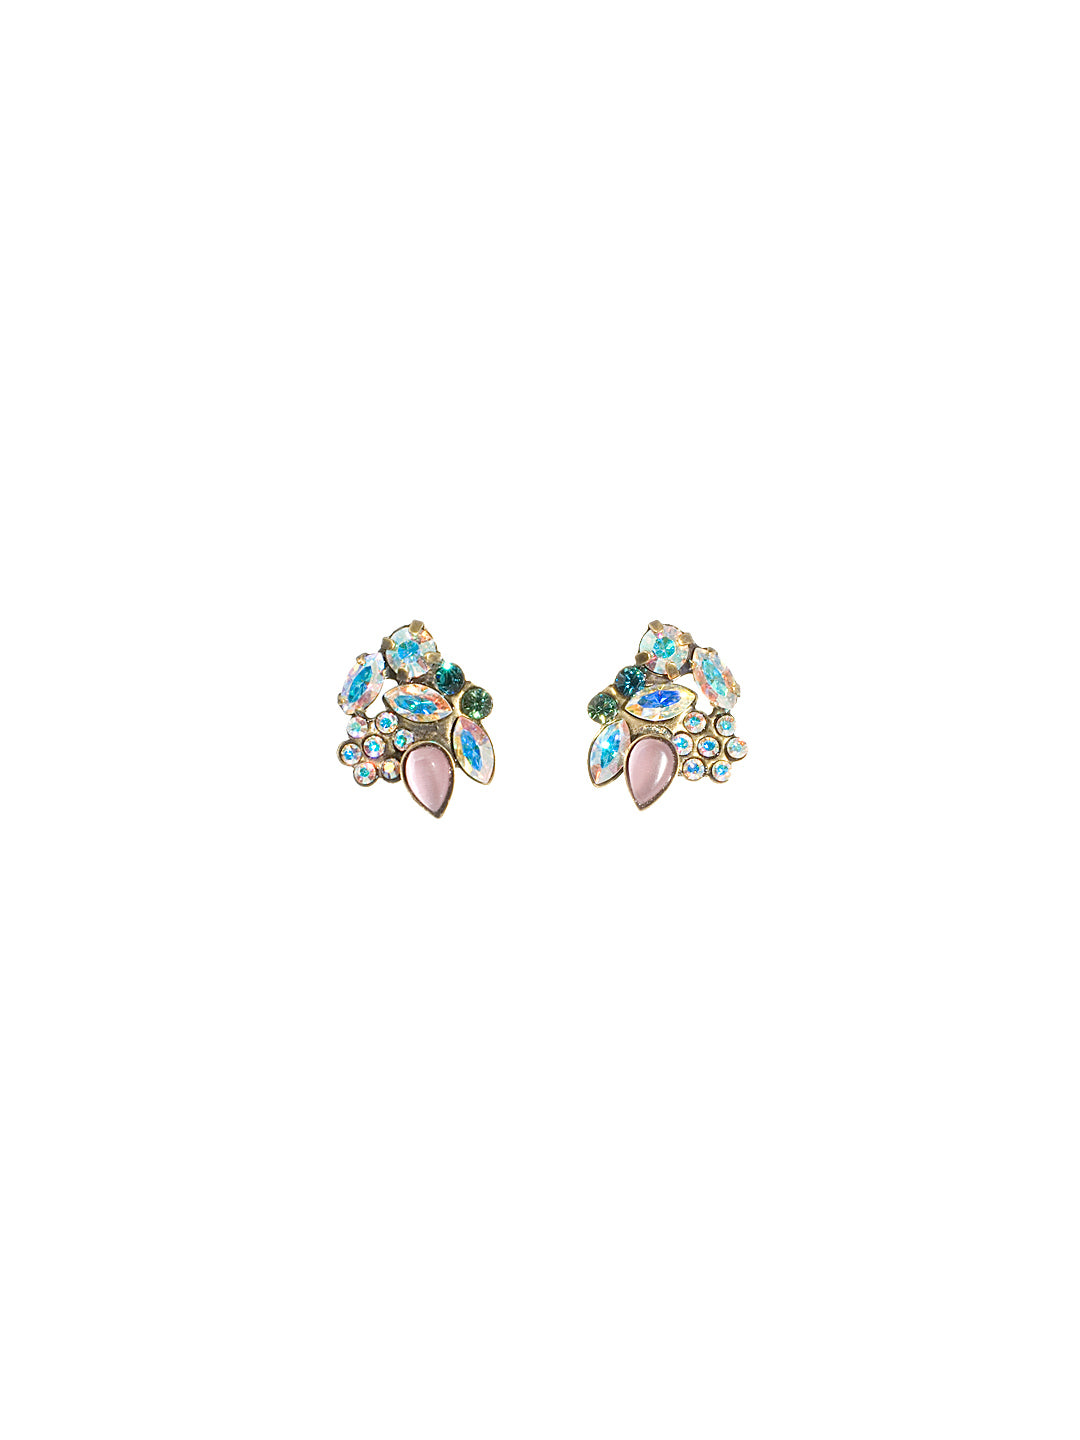 Glamourous Floral Cluster Post Earring - EBJ31AGSMI